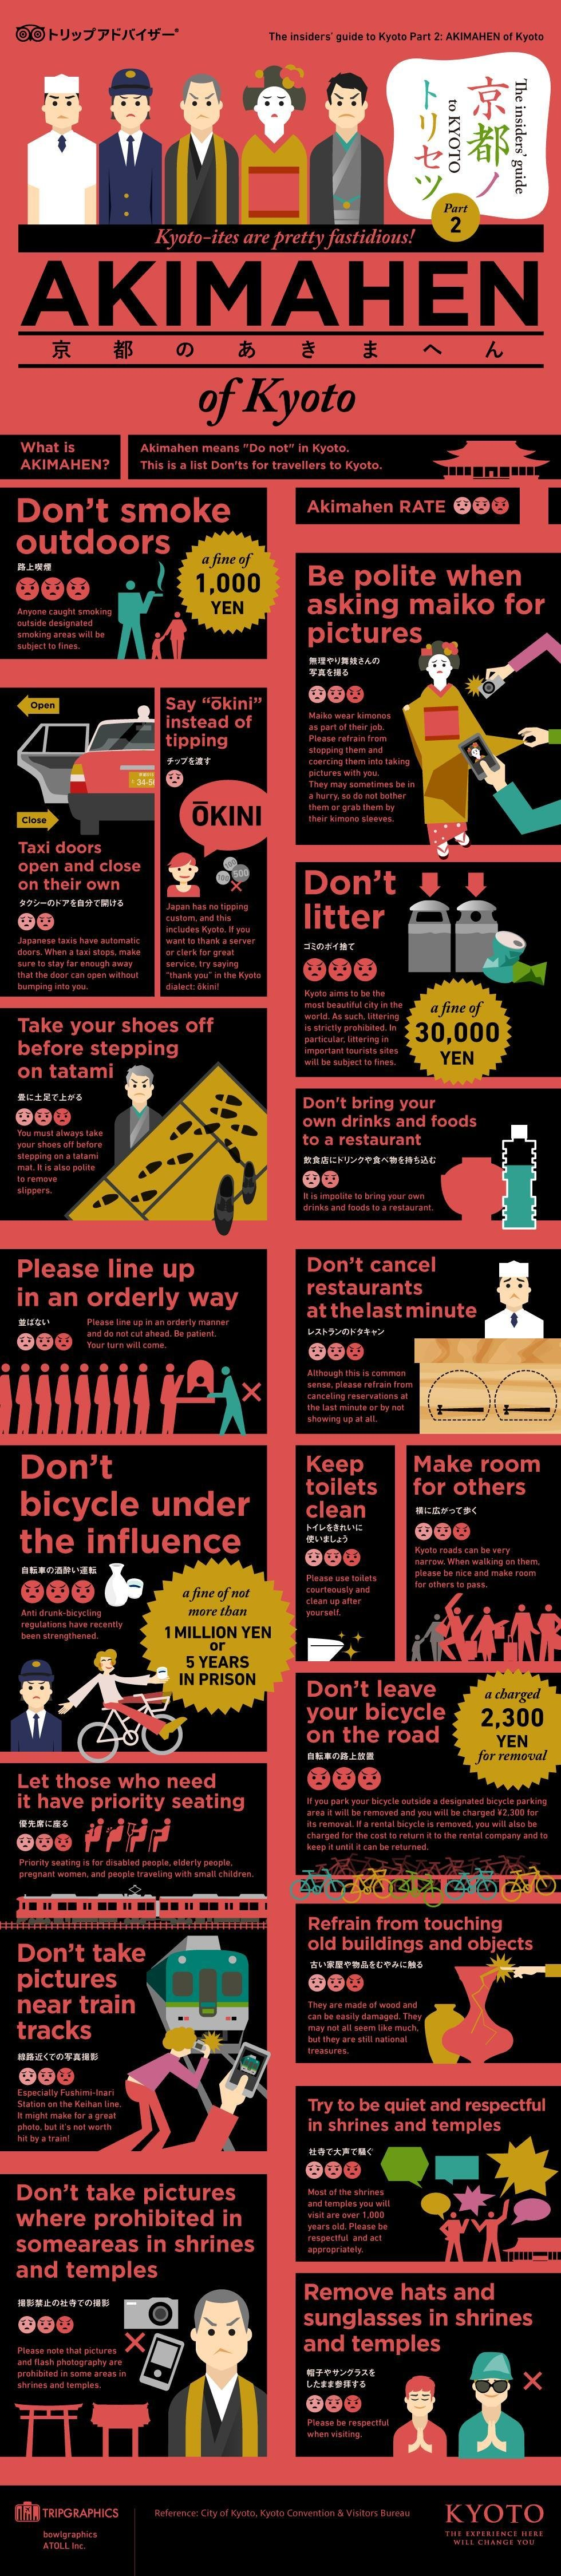 kyoto, infographic, what not to do, politeness